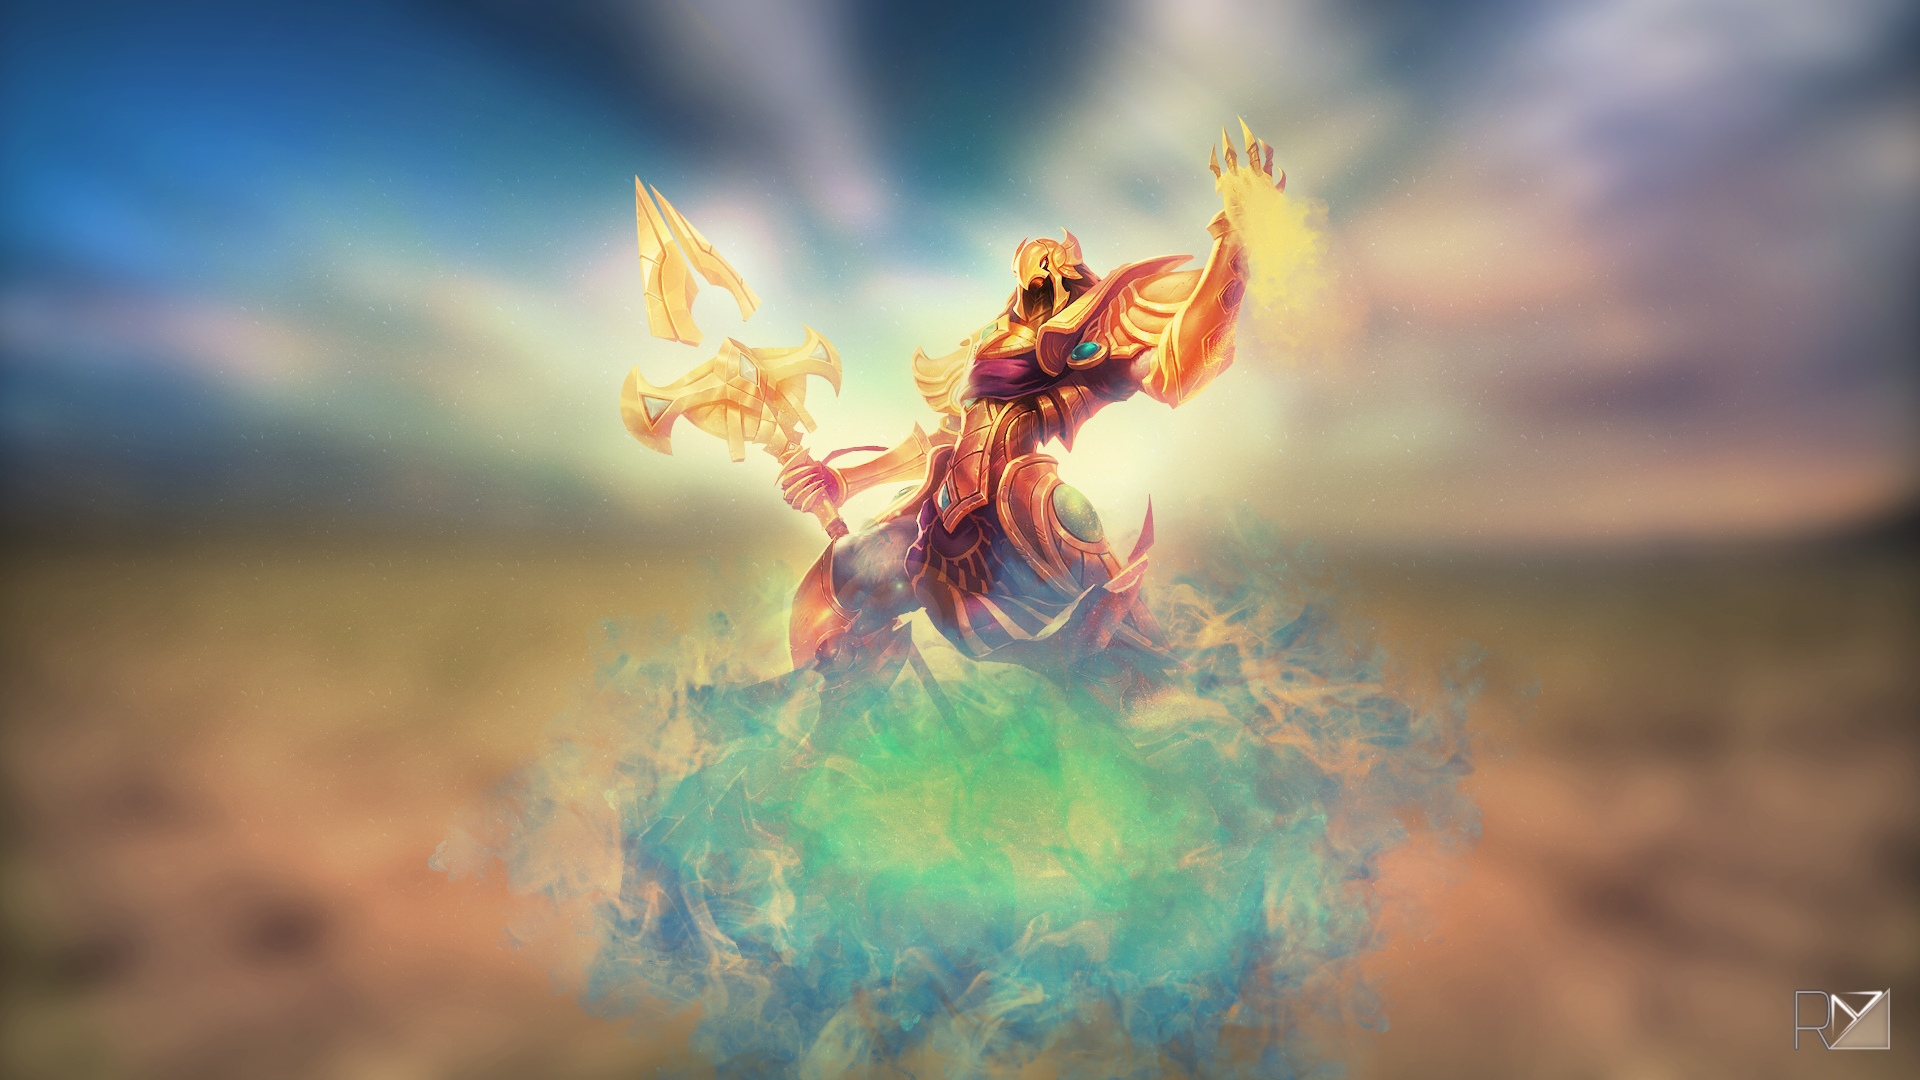 Azir League Of Legends Without Text By Ruanes97 On Deviantart